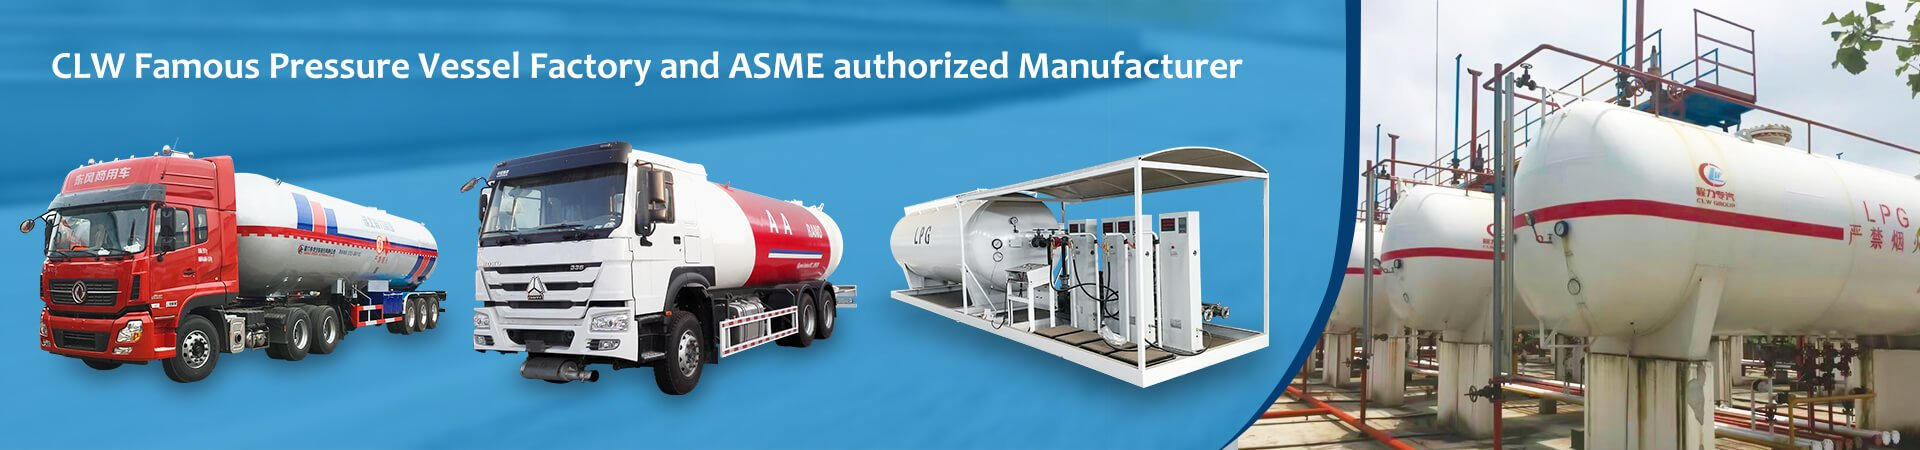 CLW Famous Pressure Vessel Factory and ASME authorized Manufacturer